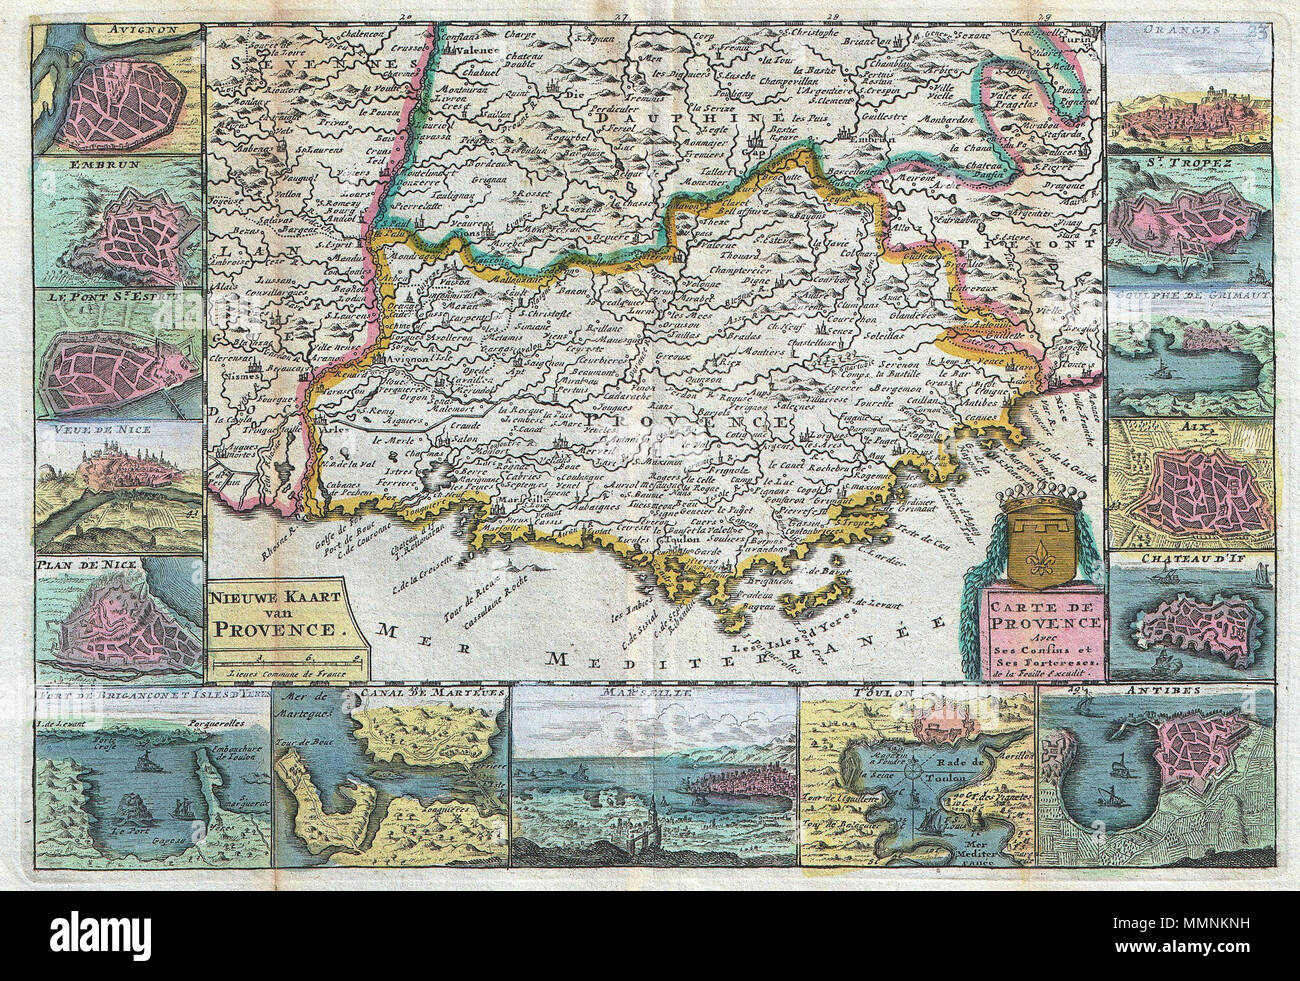 Antibes To Toulon English A Stunning Map Of Provence Provençal France First